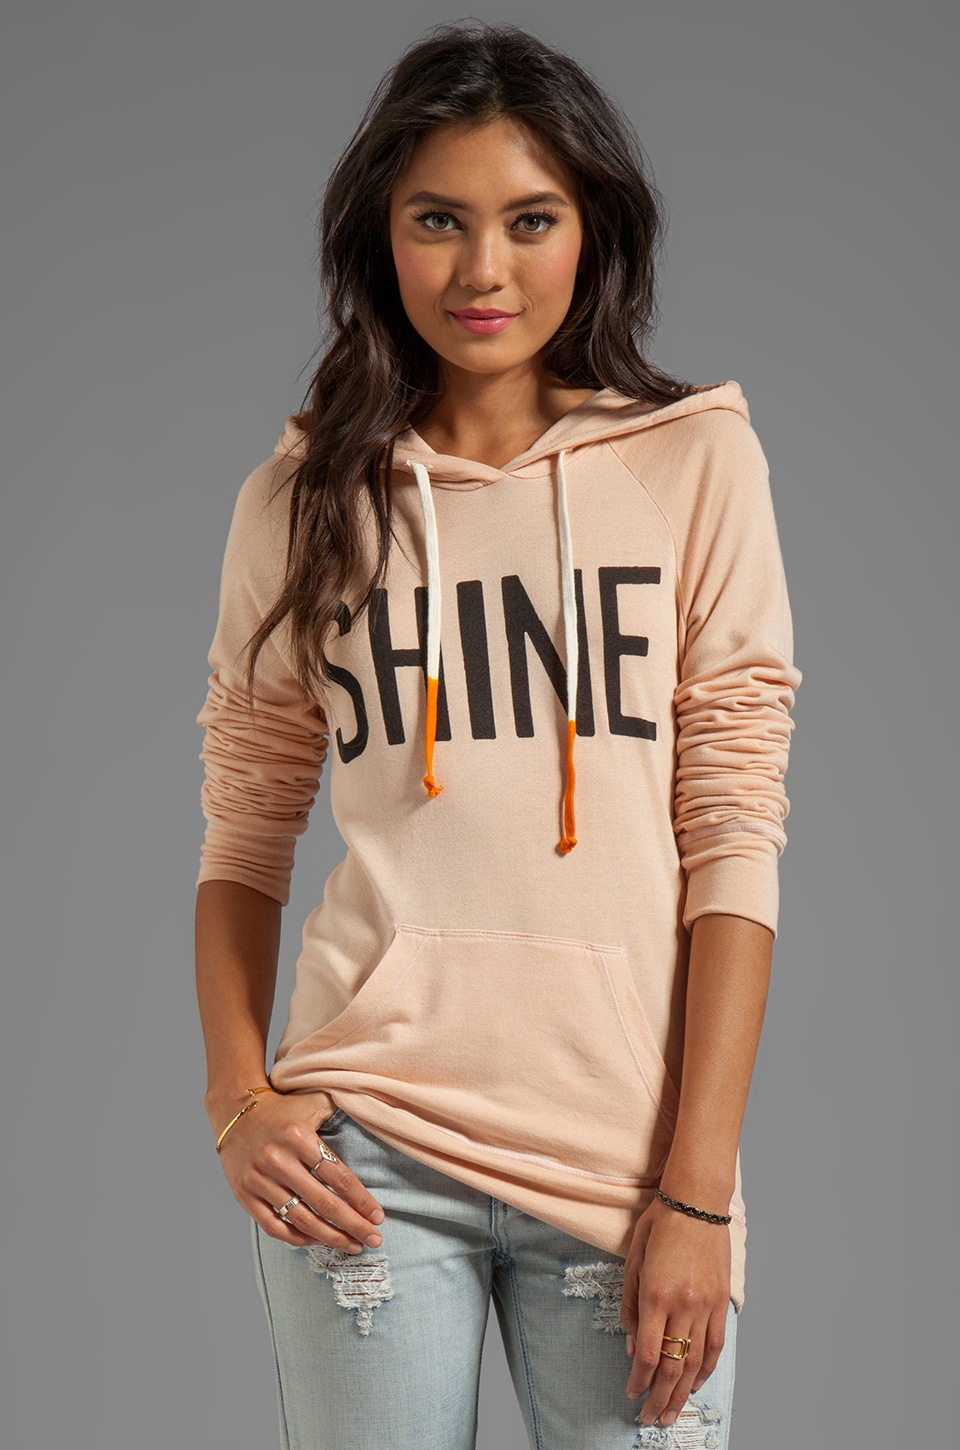 SUNDRY Shine Pullover Hoodie in Nude